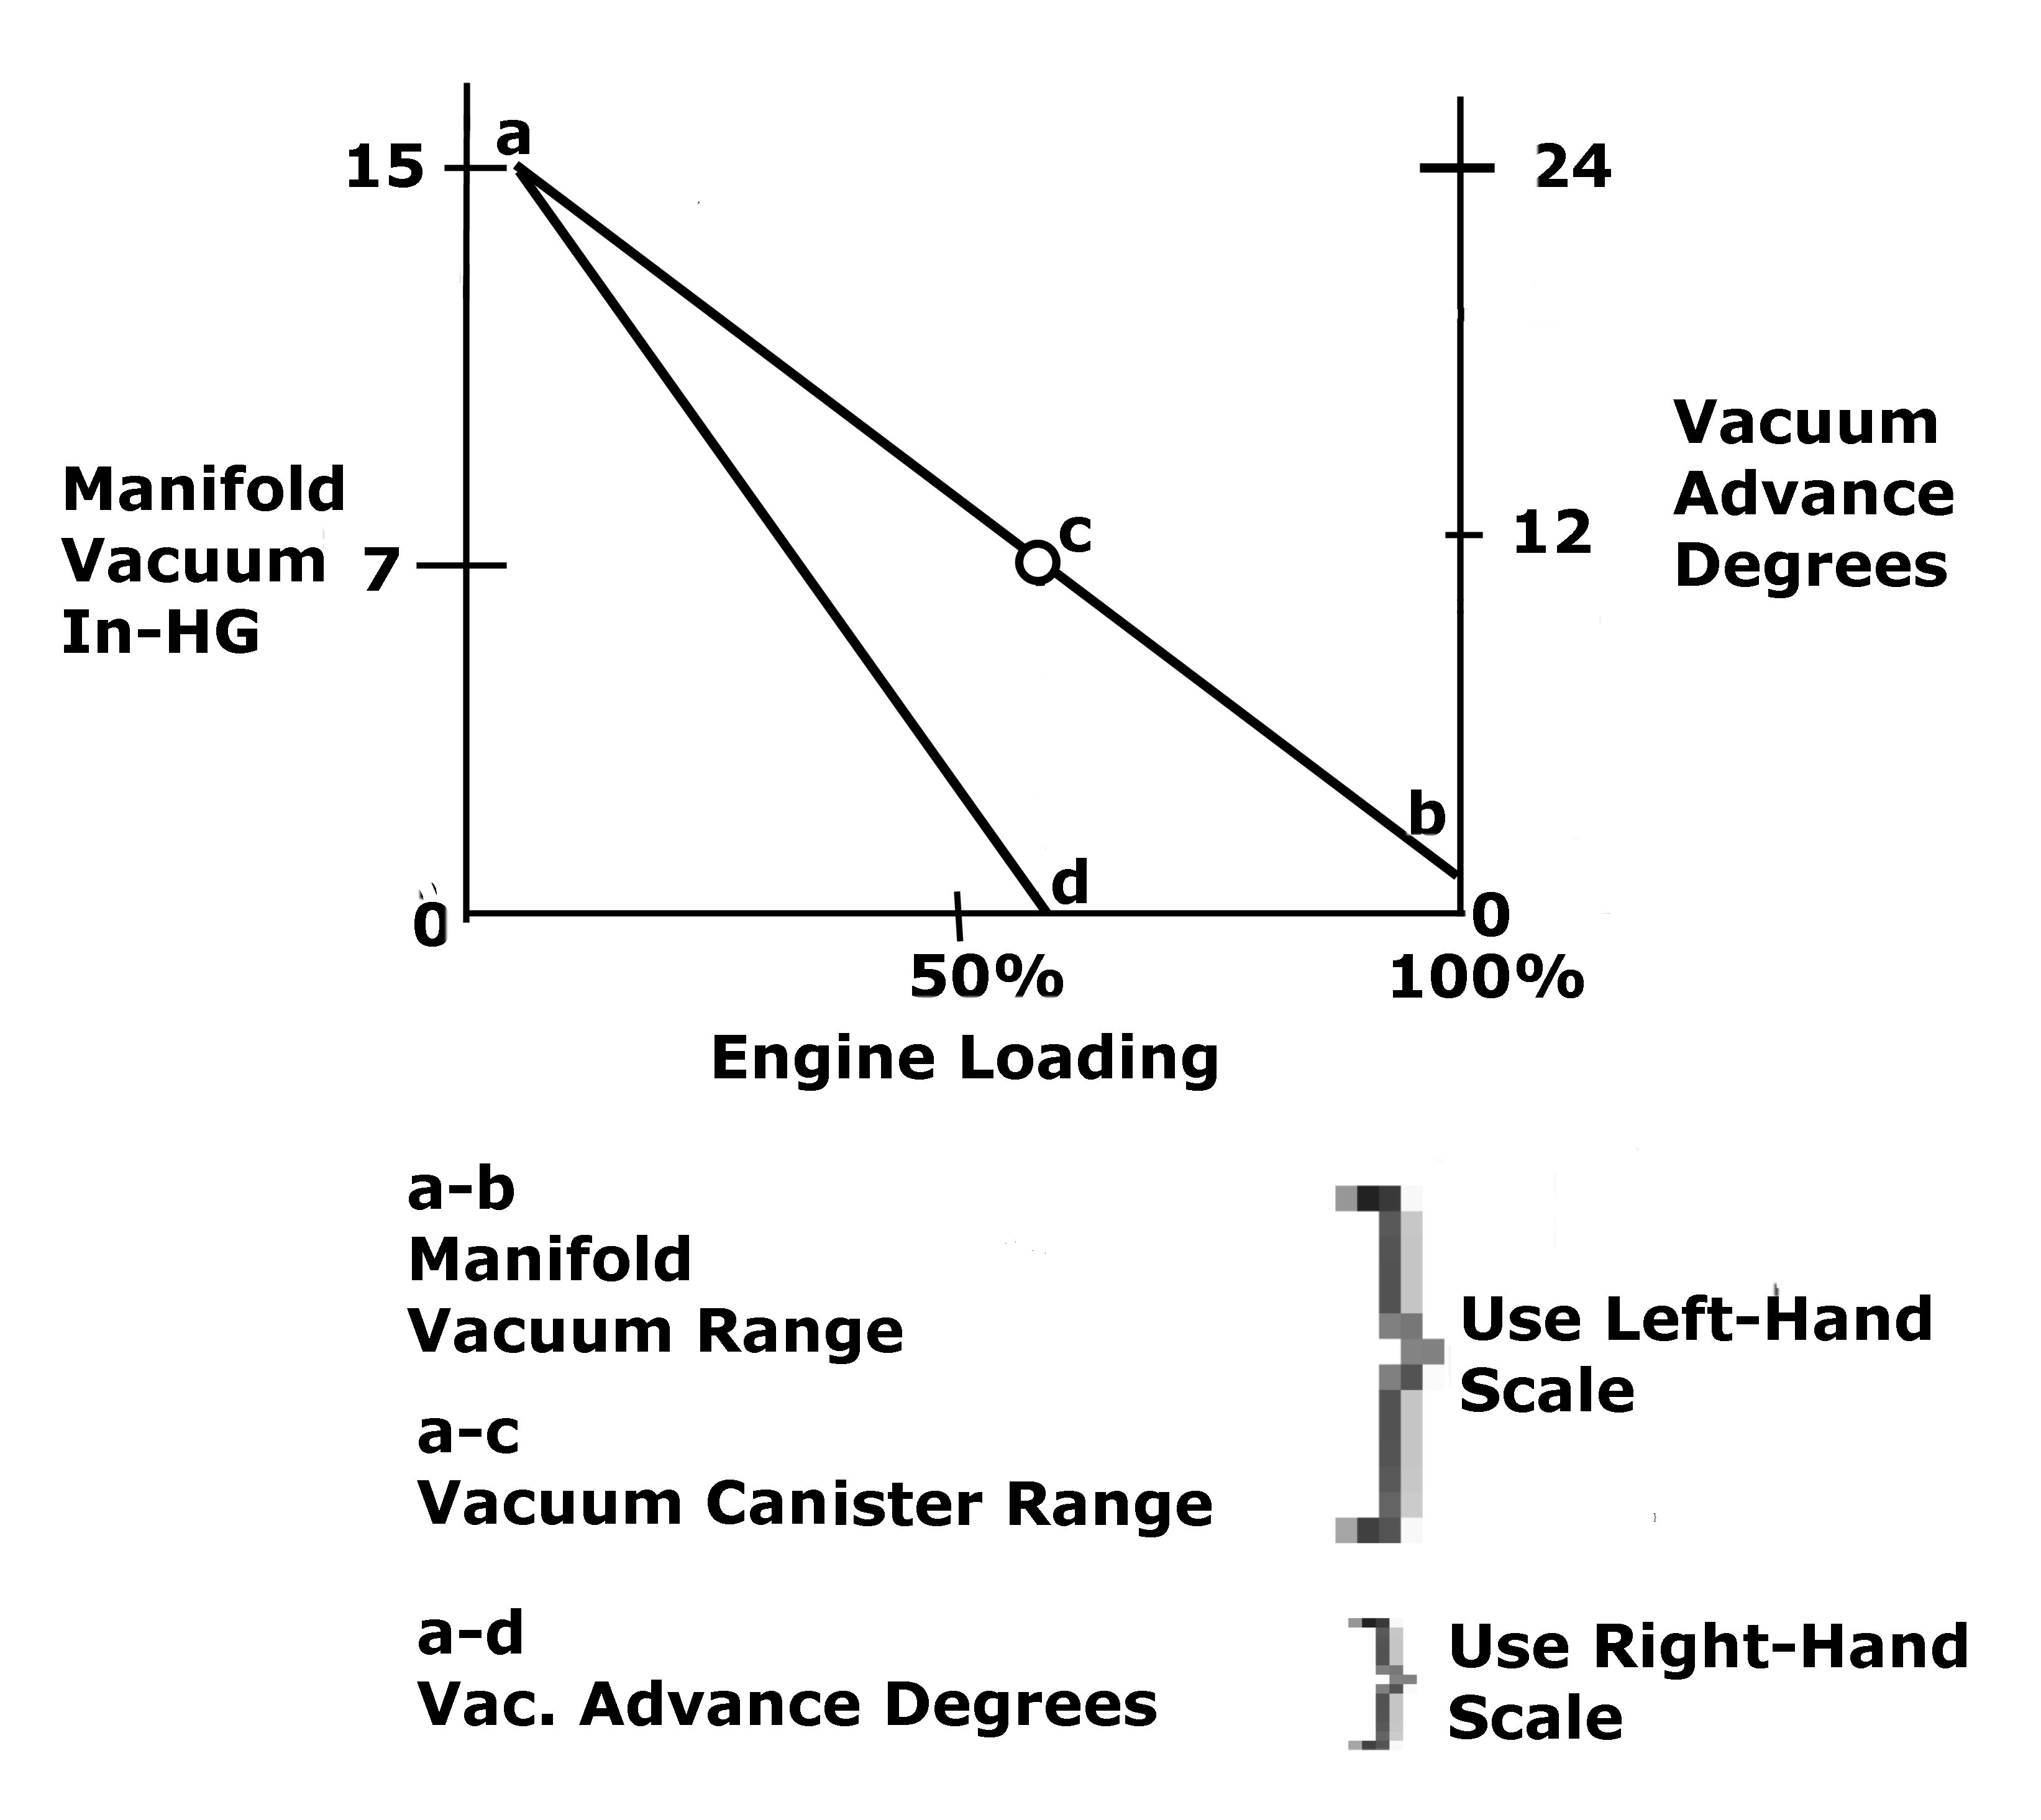 How much total timing (centrifical and vacuum advance